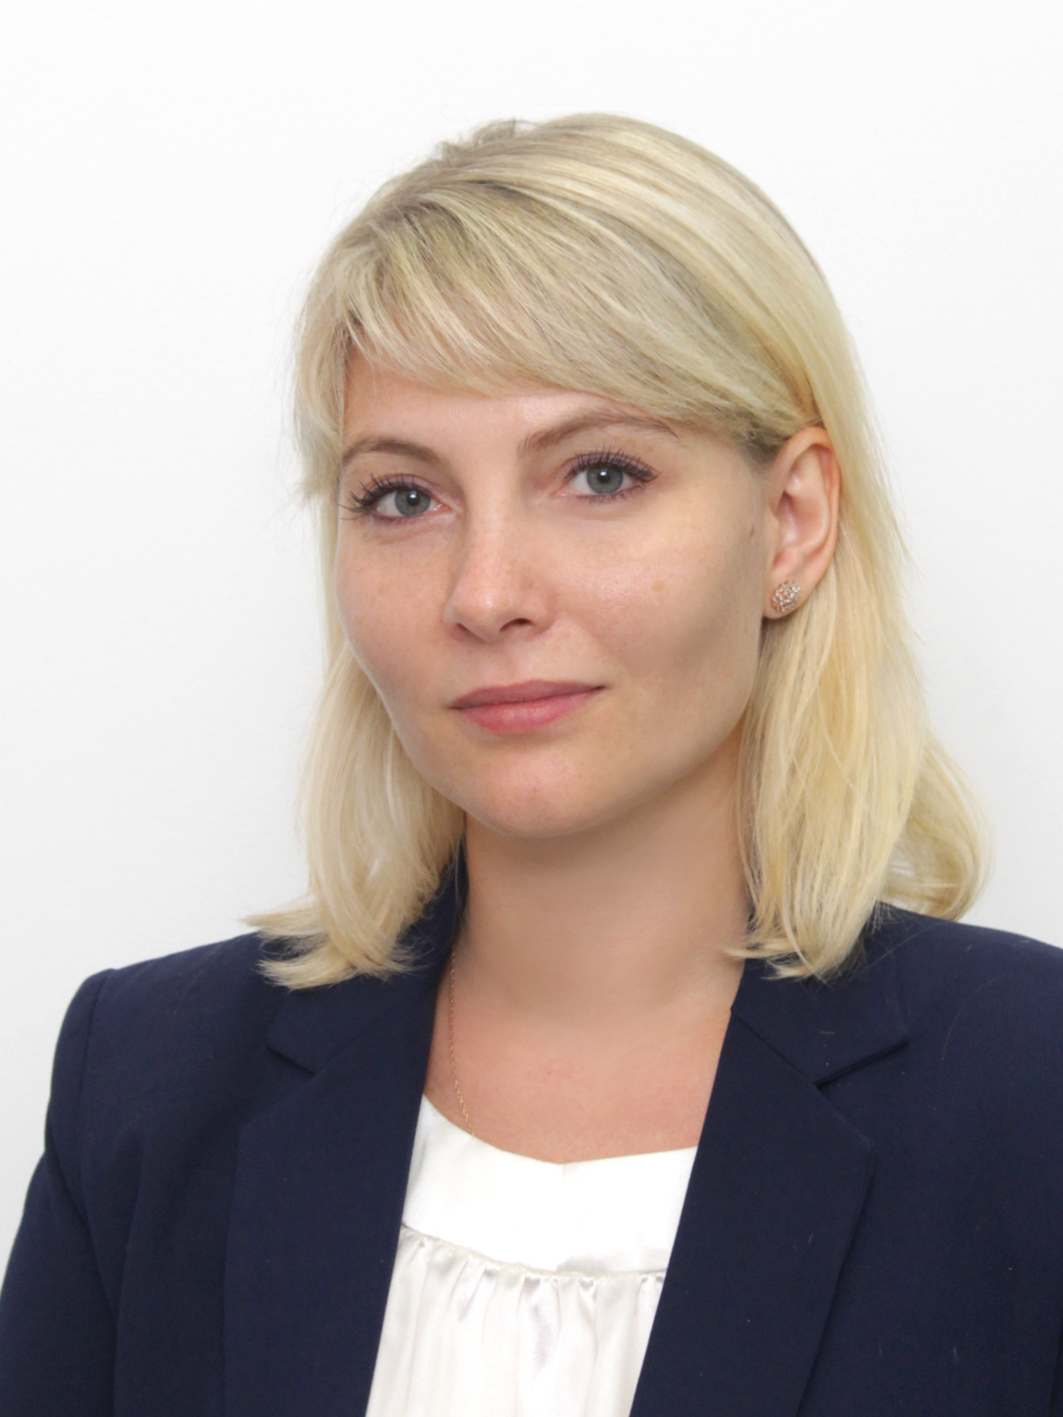 Profile picture of Nataliya Sydorova